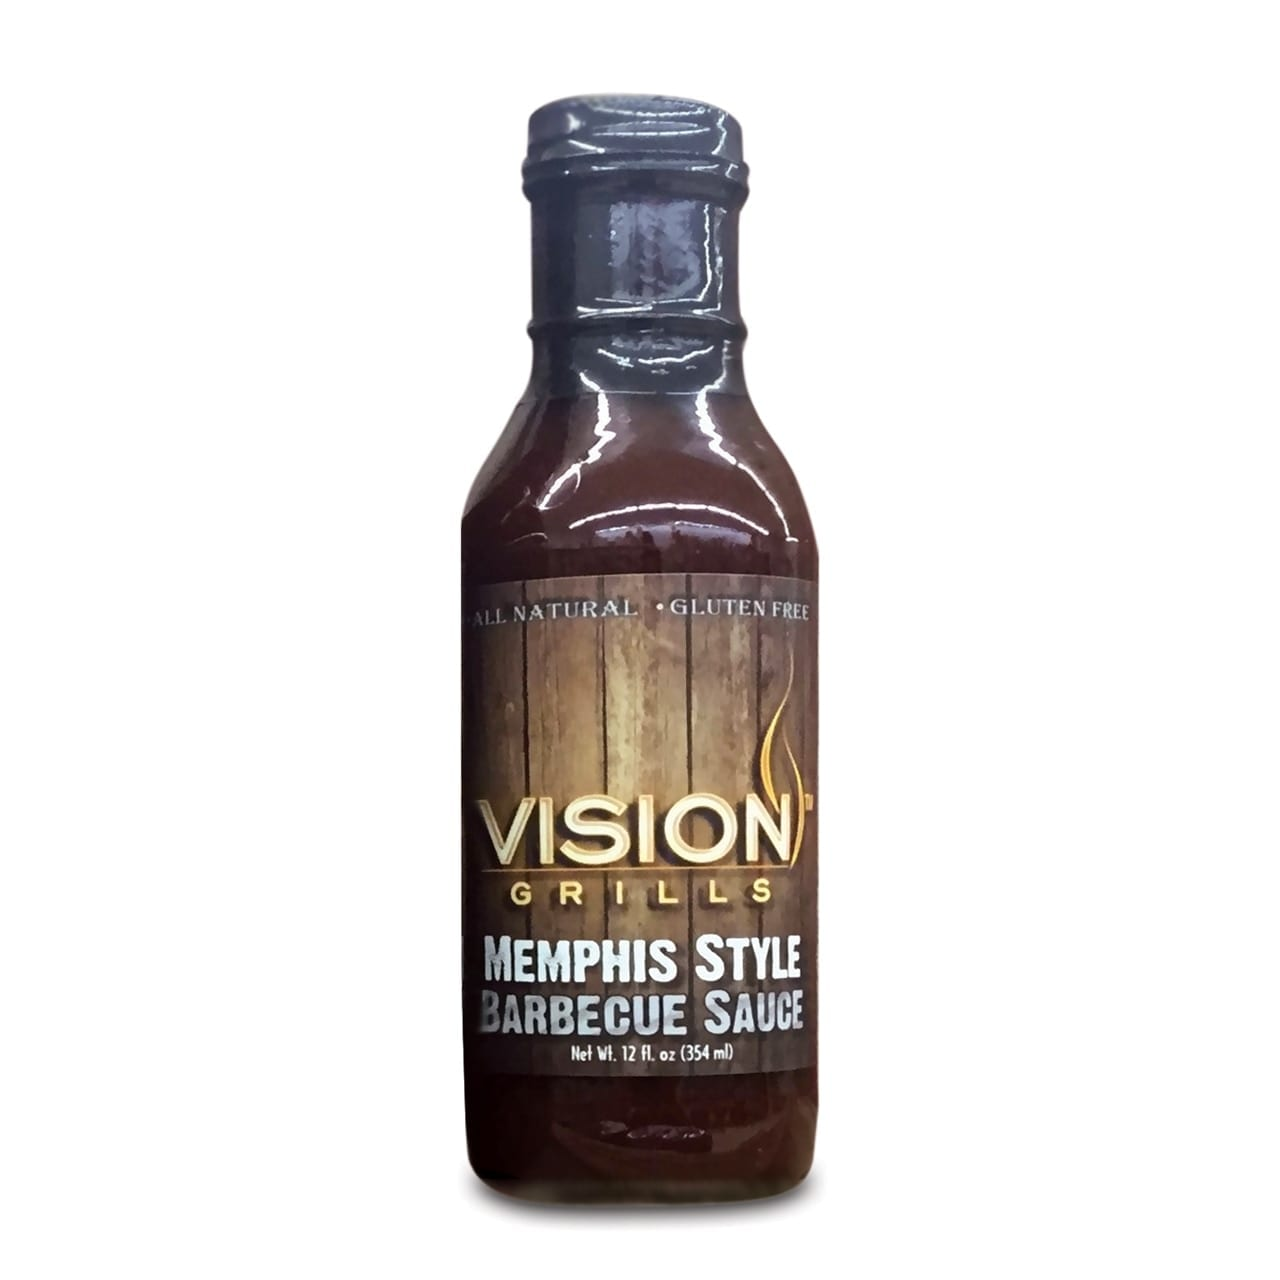 Memphis Style Barbecue Sauce